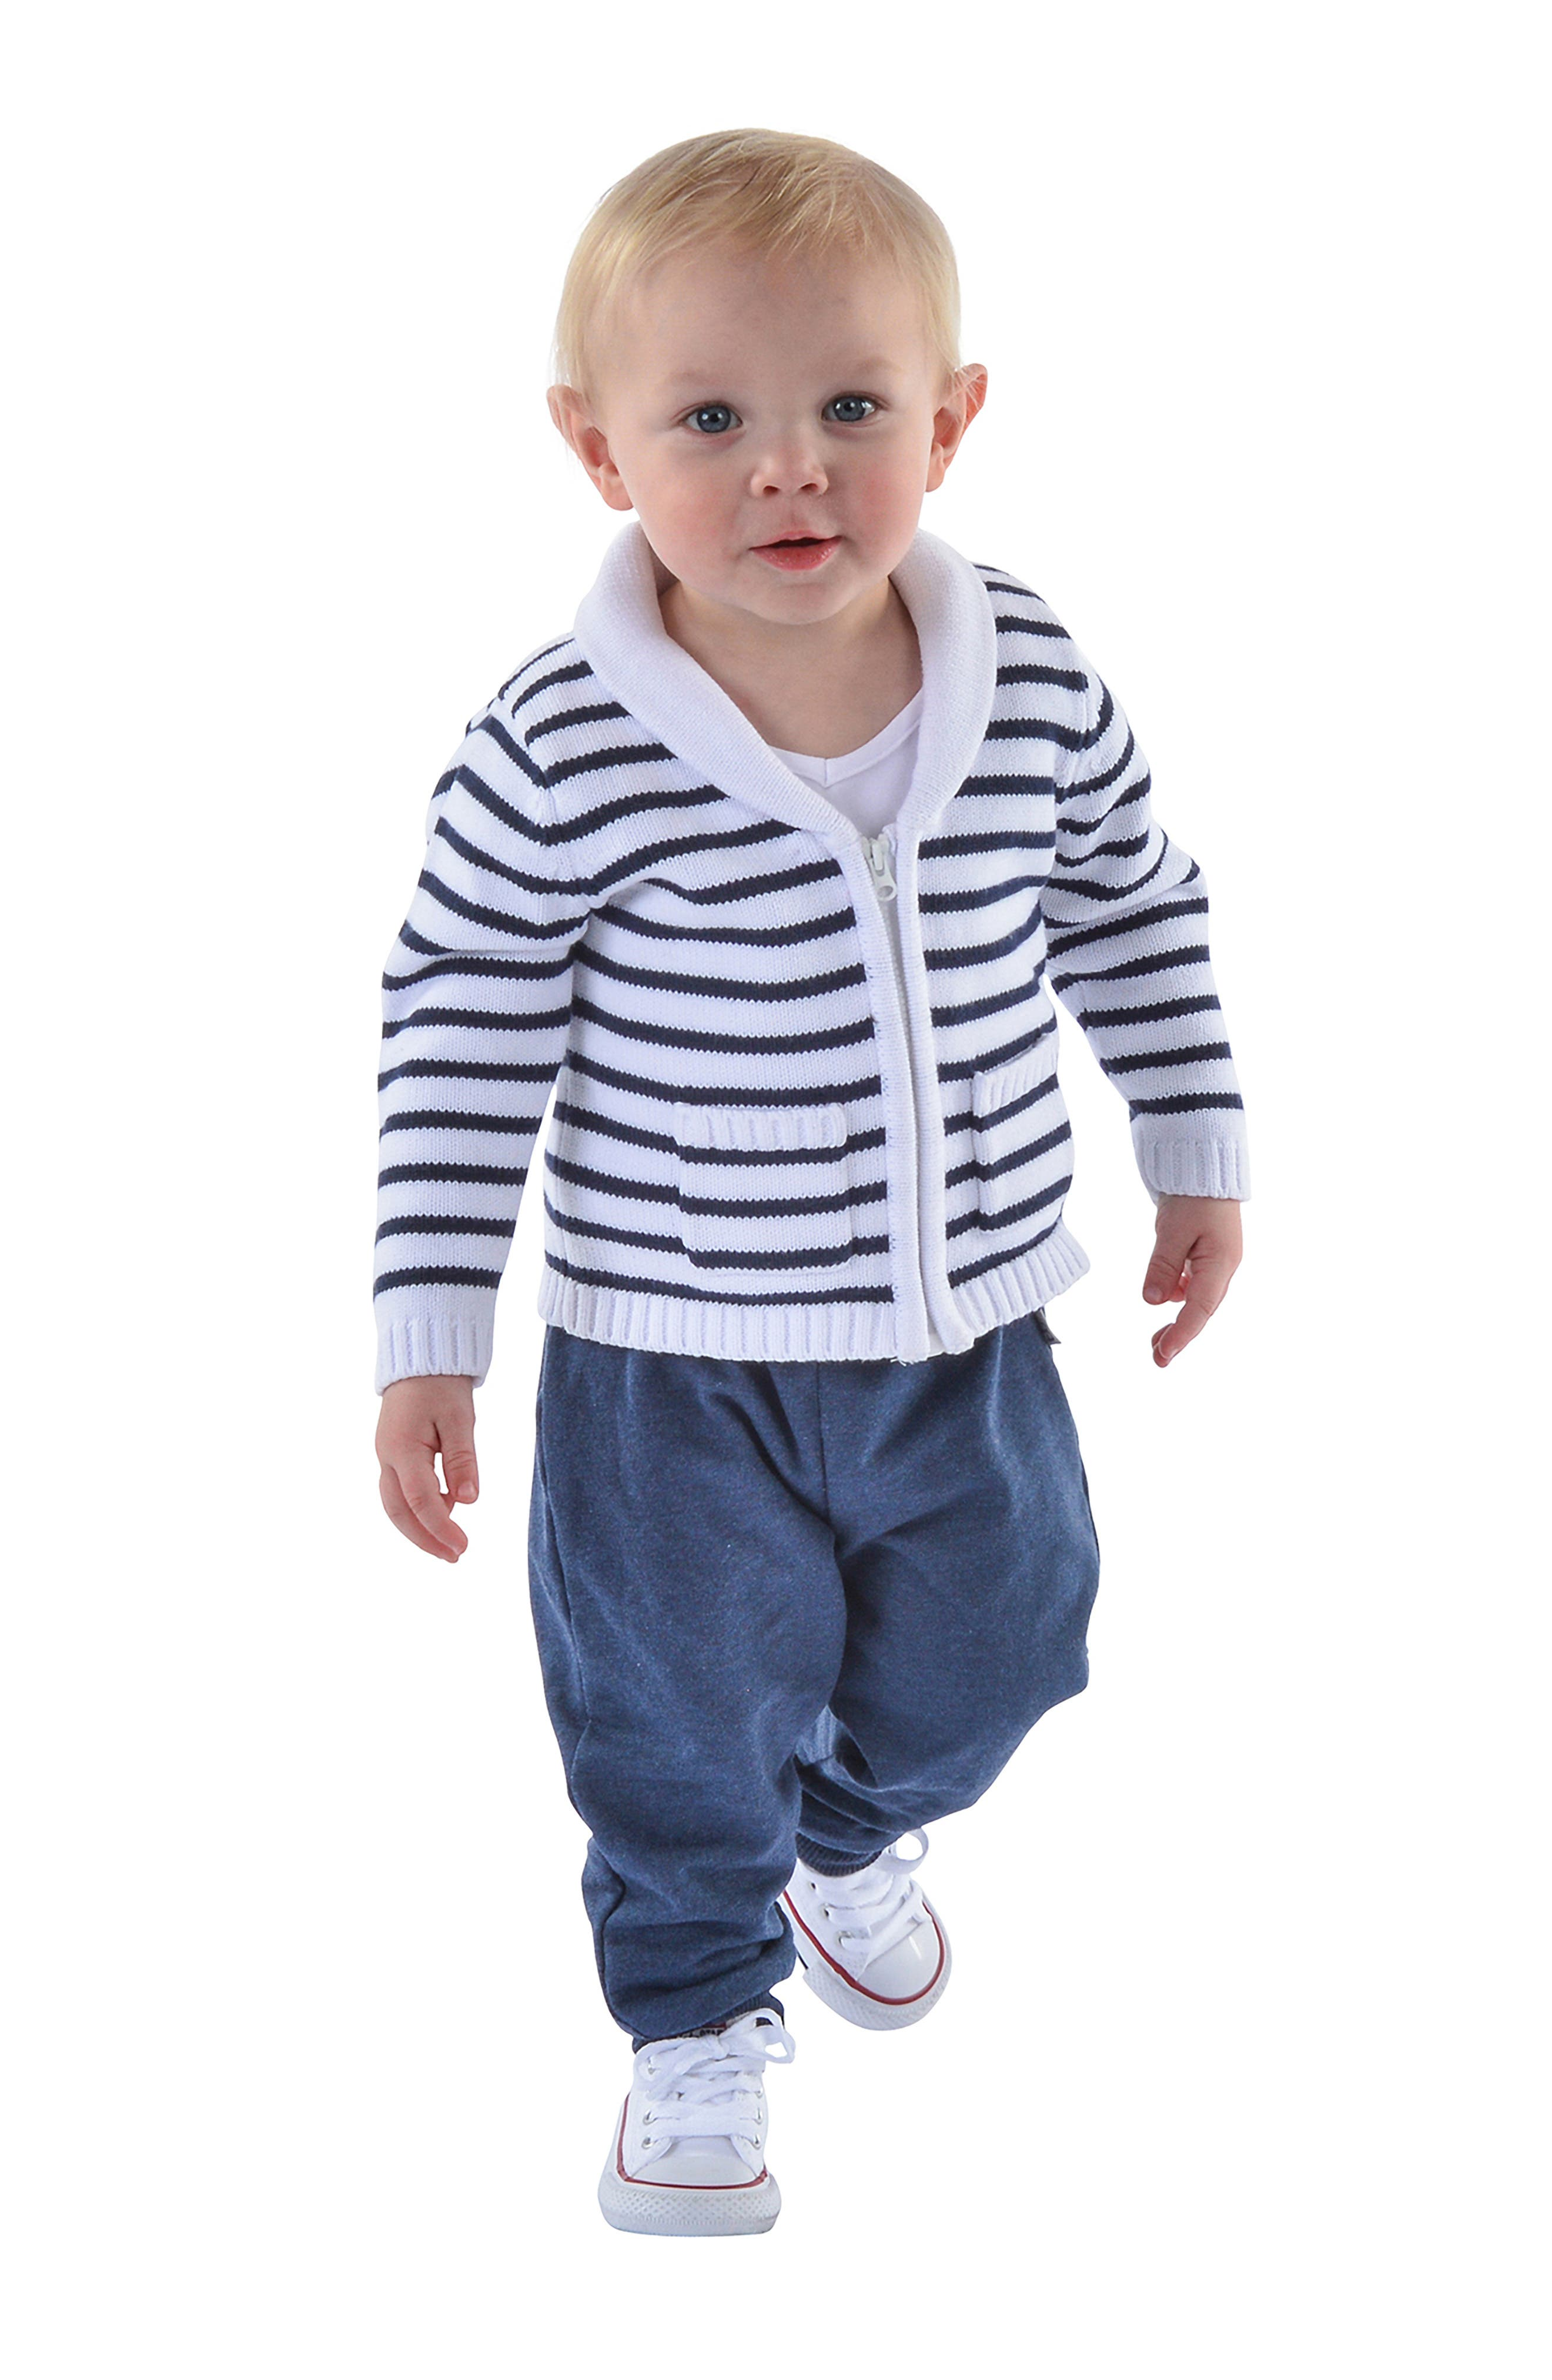 LITTLE BROTHER BY PIPPA & JULIE, Sweater, T-Shirt & Pants Set, Alternate thumbnail 5, color, NAVY/ WHITE